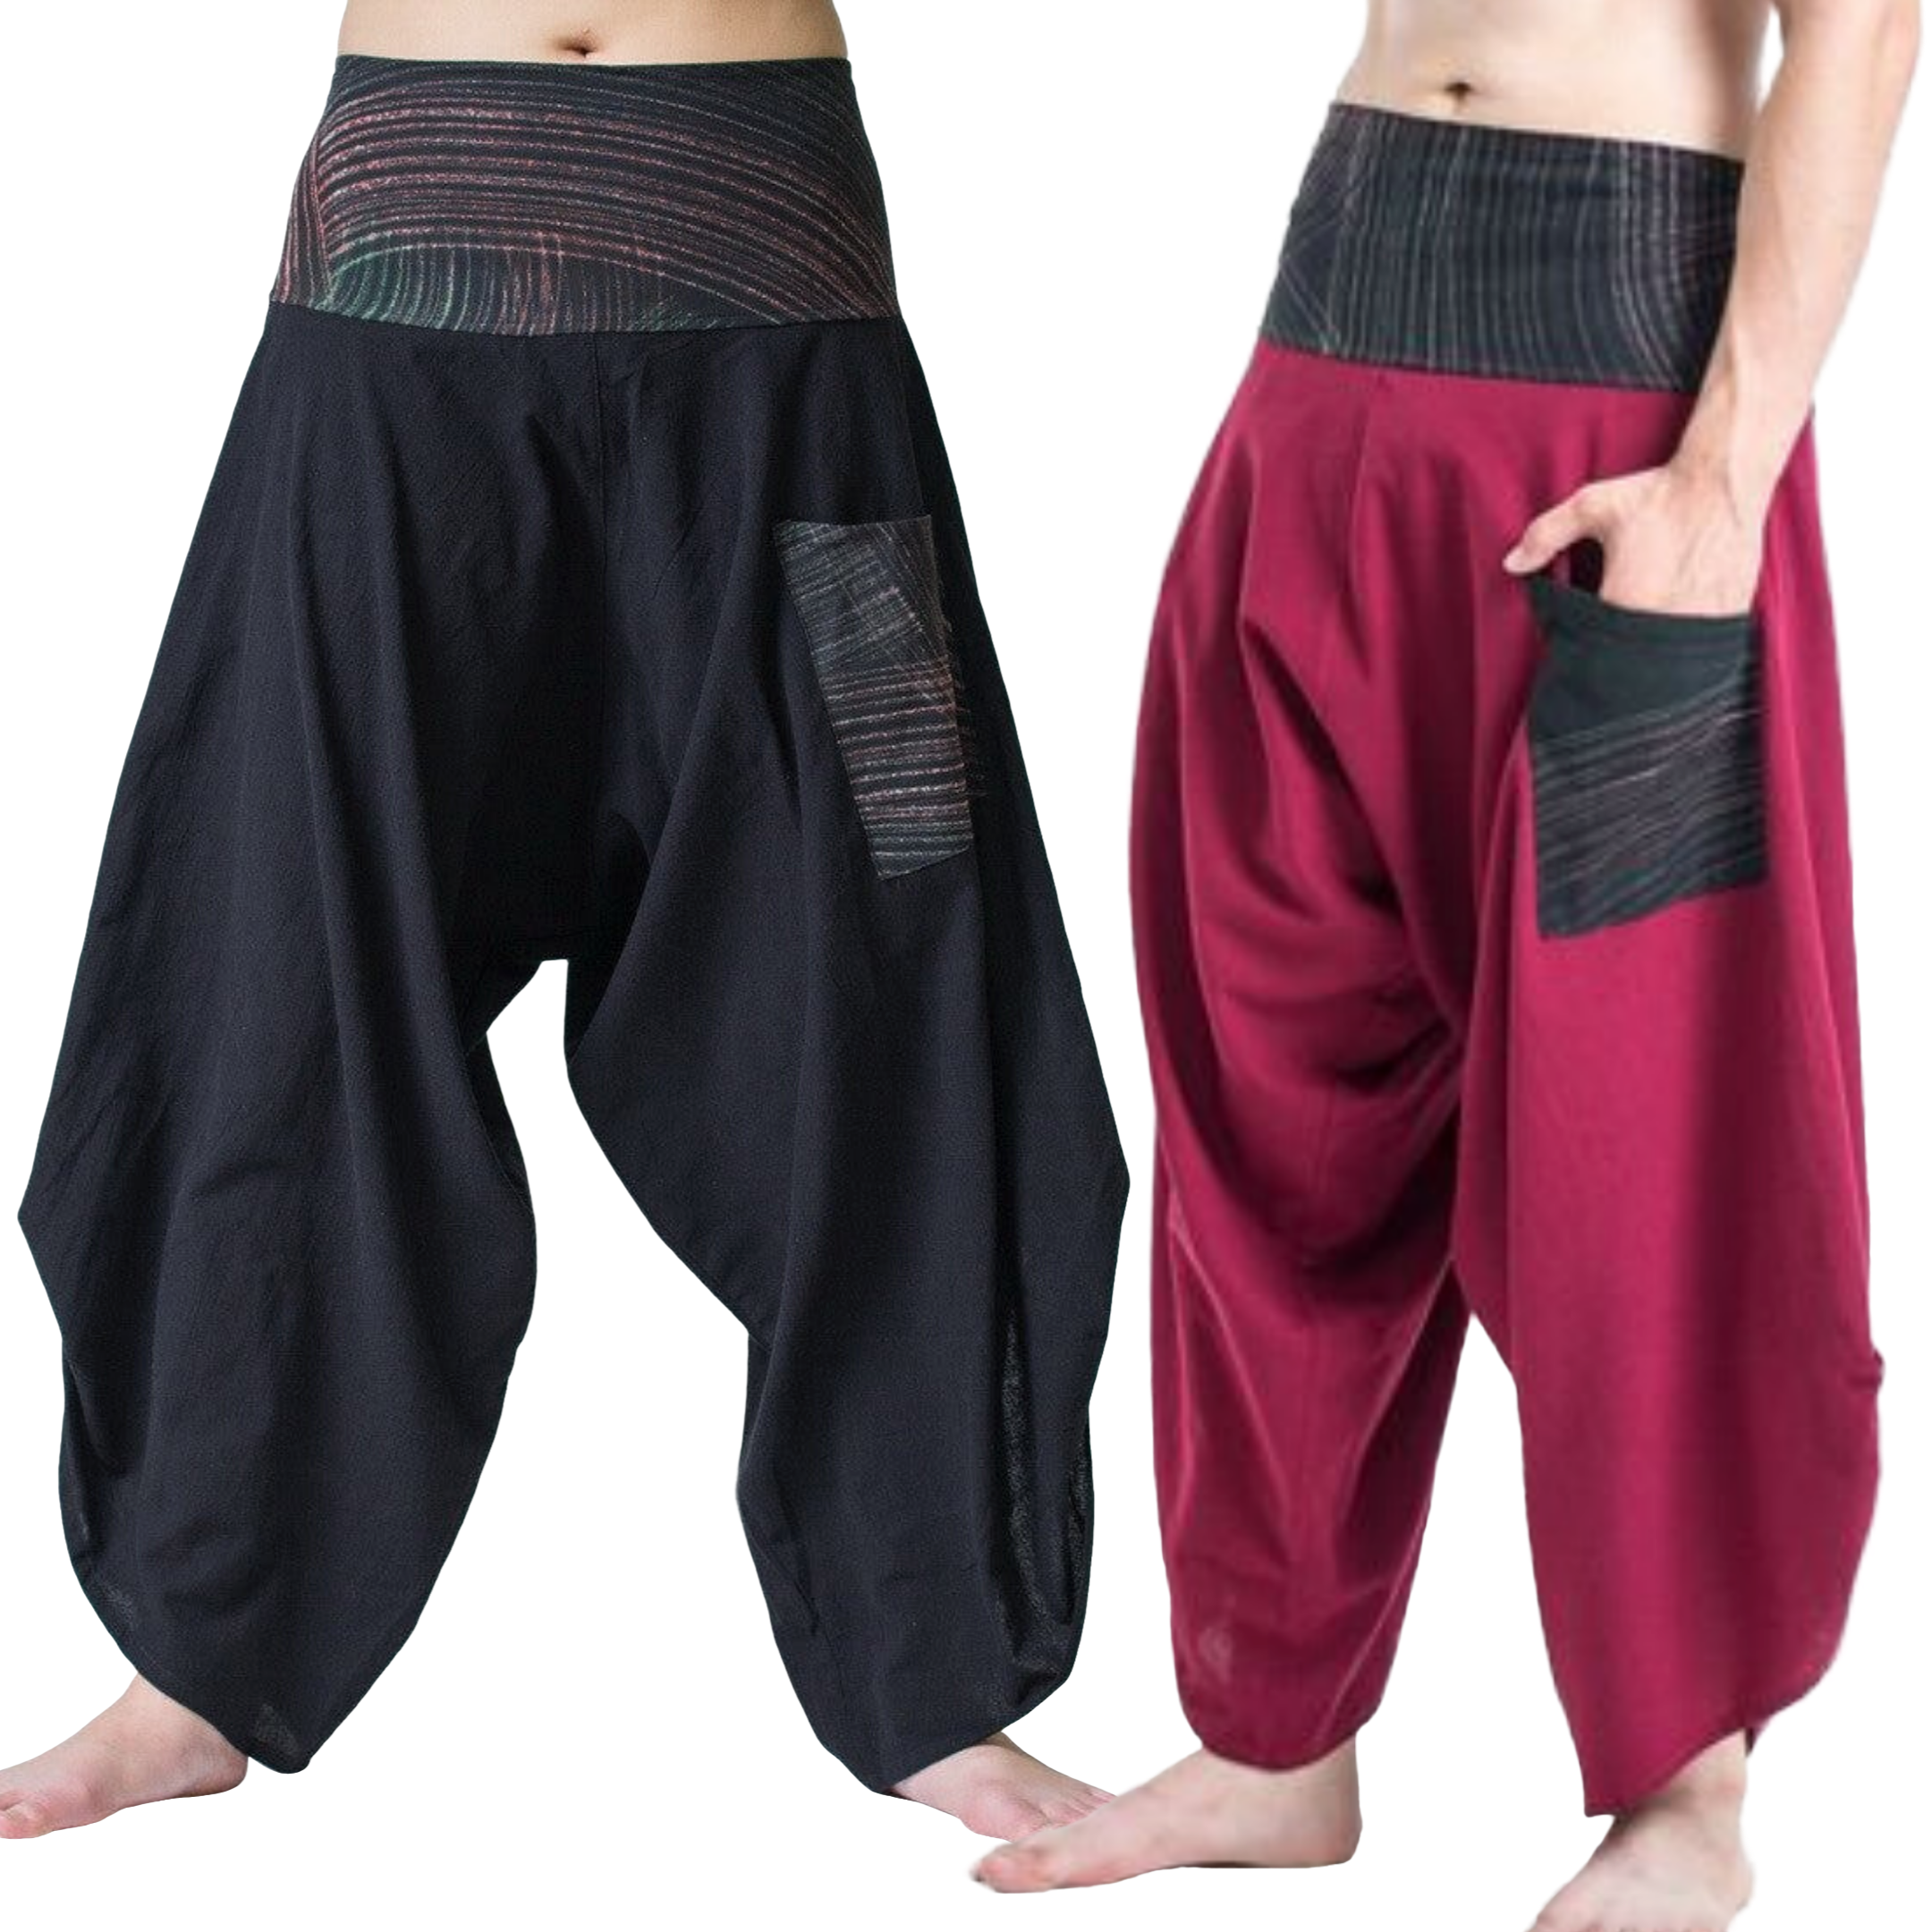 Button Up Thai Hill Tribe Trim Unisex Pants